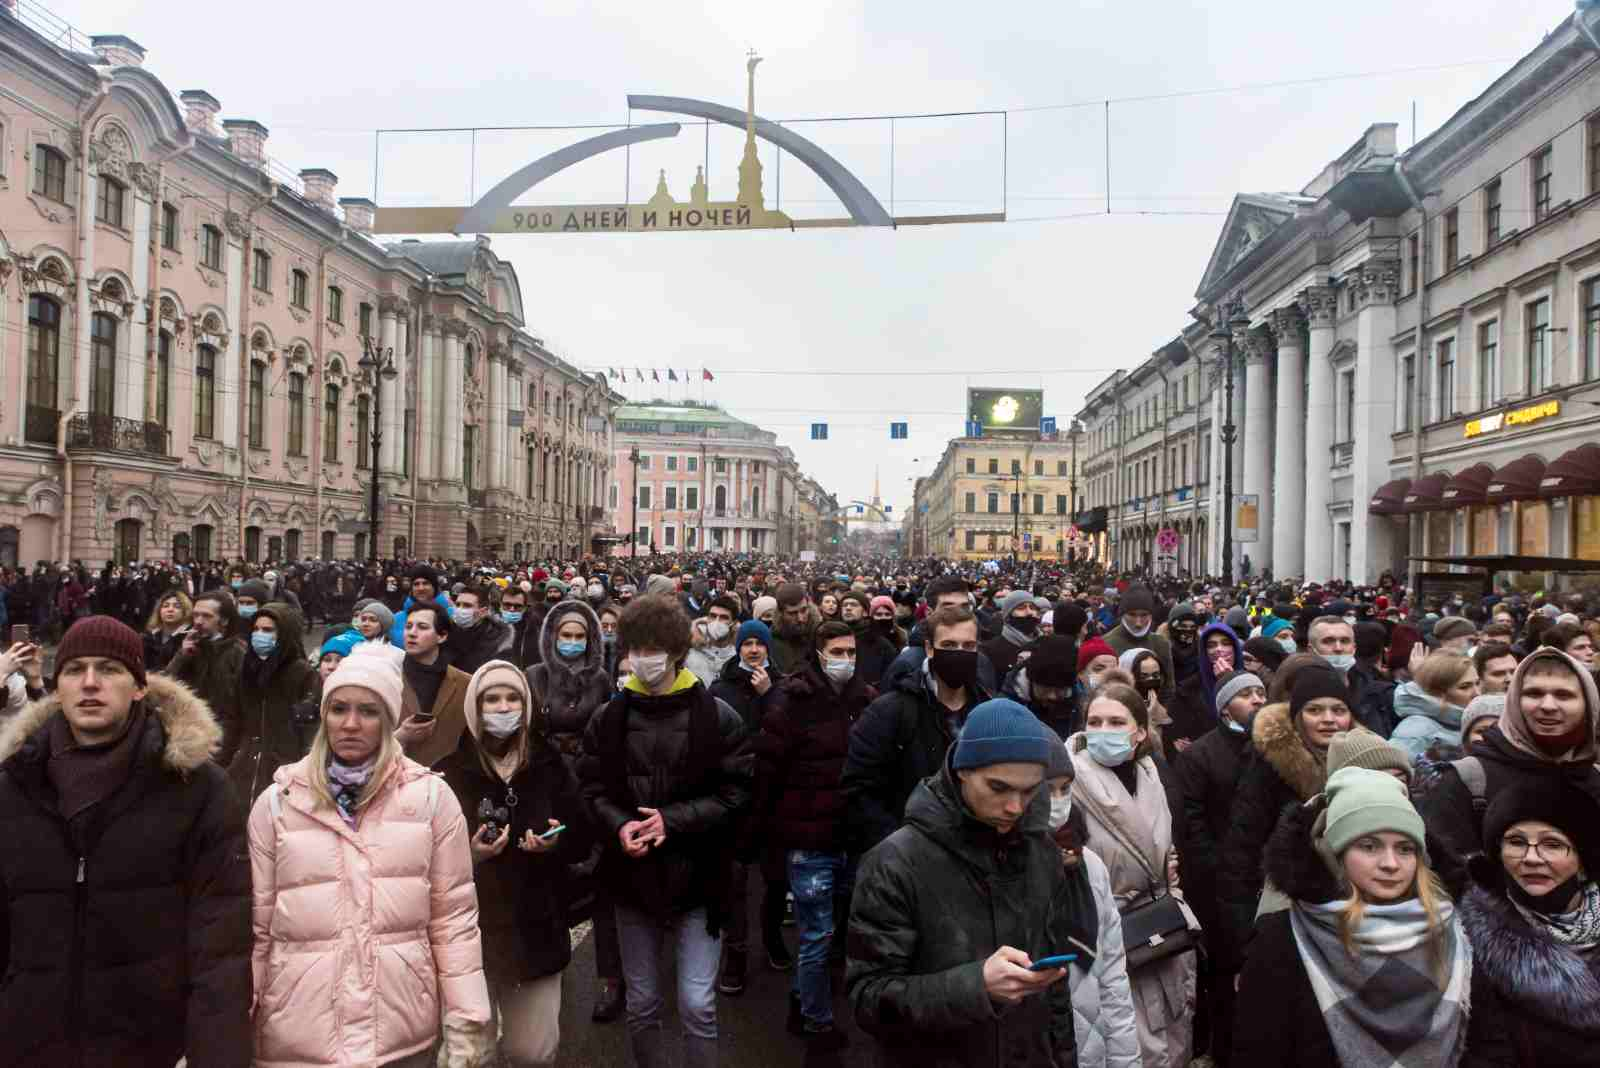 Procession in support of Alexei Navalny. St. Petersburg, Nevsky prospect. January 24, 2021